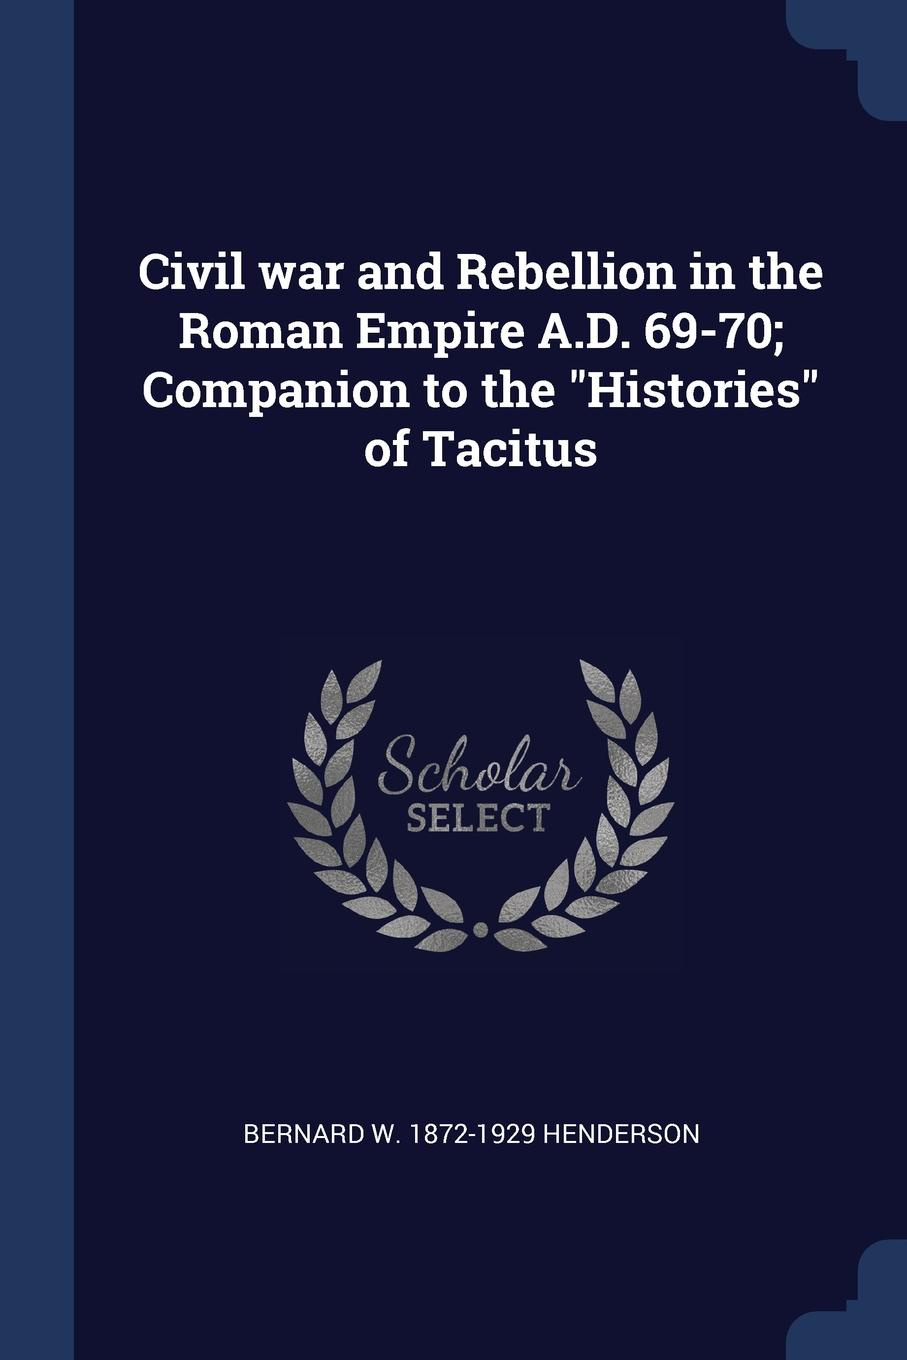 Civil war and Rebellion in the Roman Empire A.D. 69-70; Companion to the `Histories` of Tacitus. Bernard W. 1872-1929 Henderson